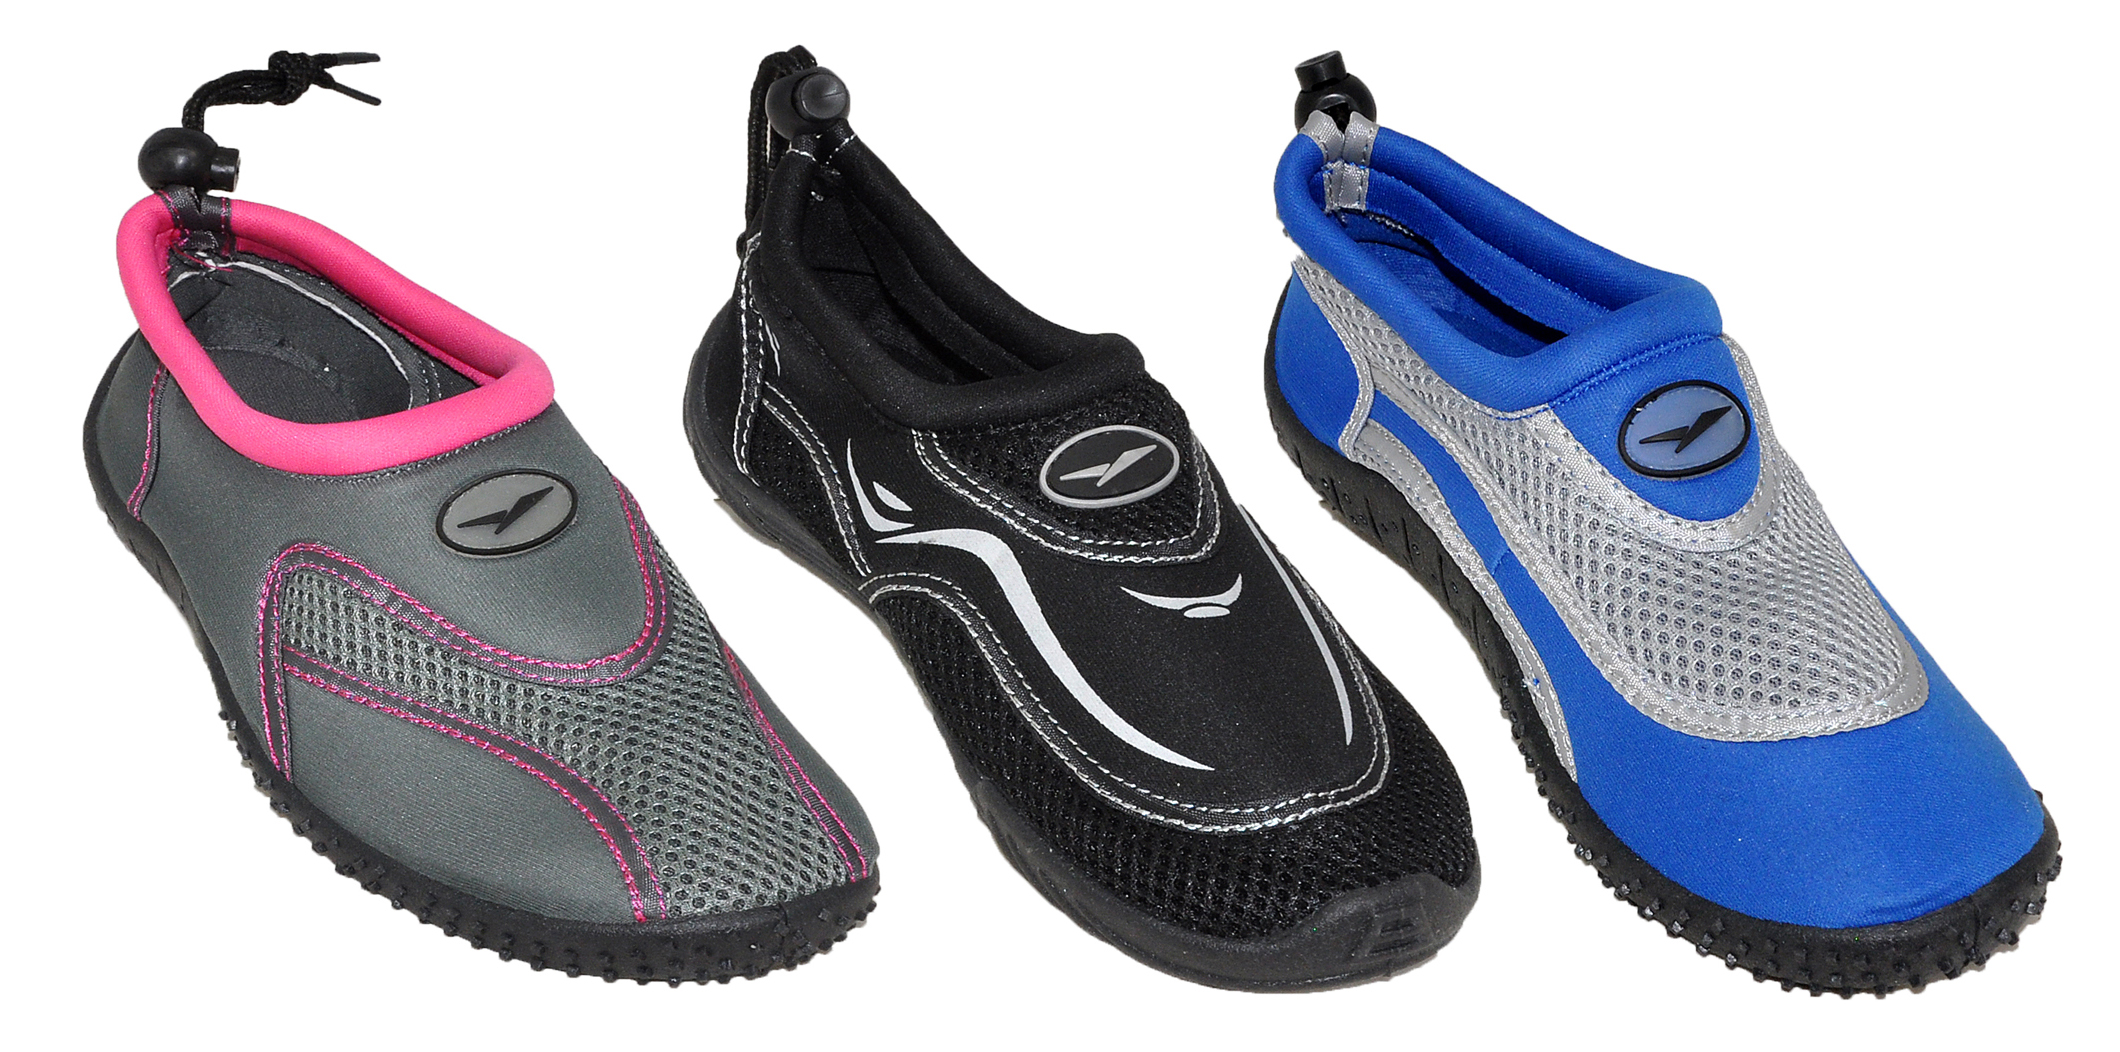 Women's Aqua SHOES w/ Drawstring & Toggle - Assorted Color - Sizes 5-10